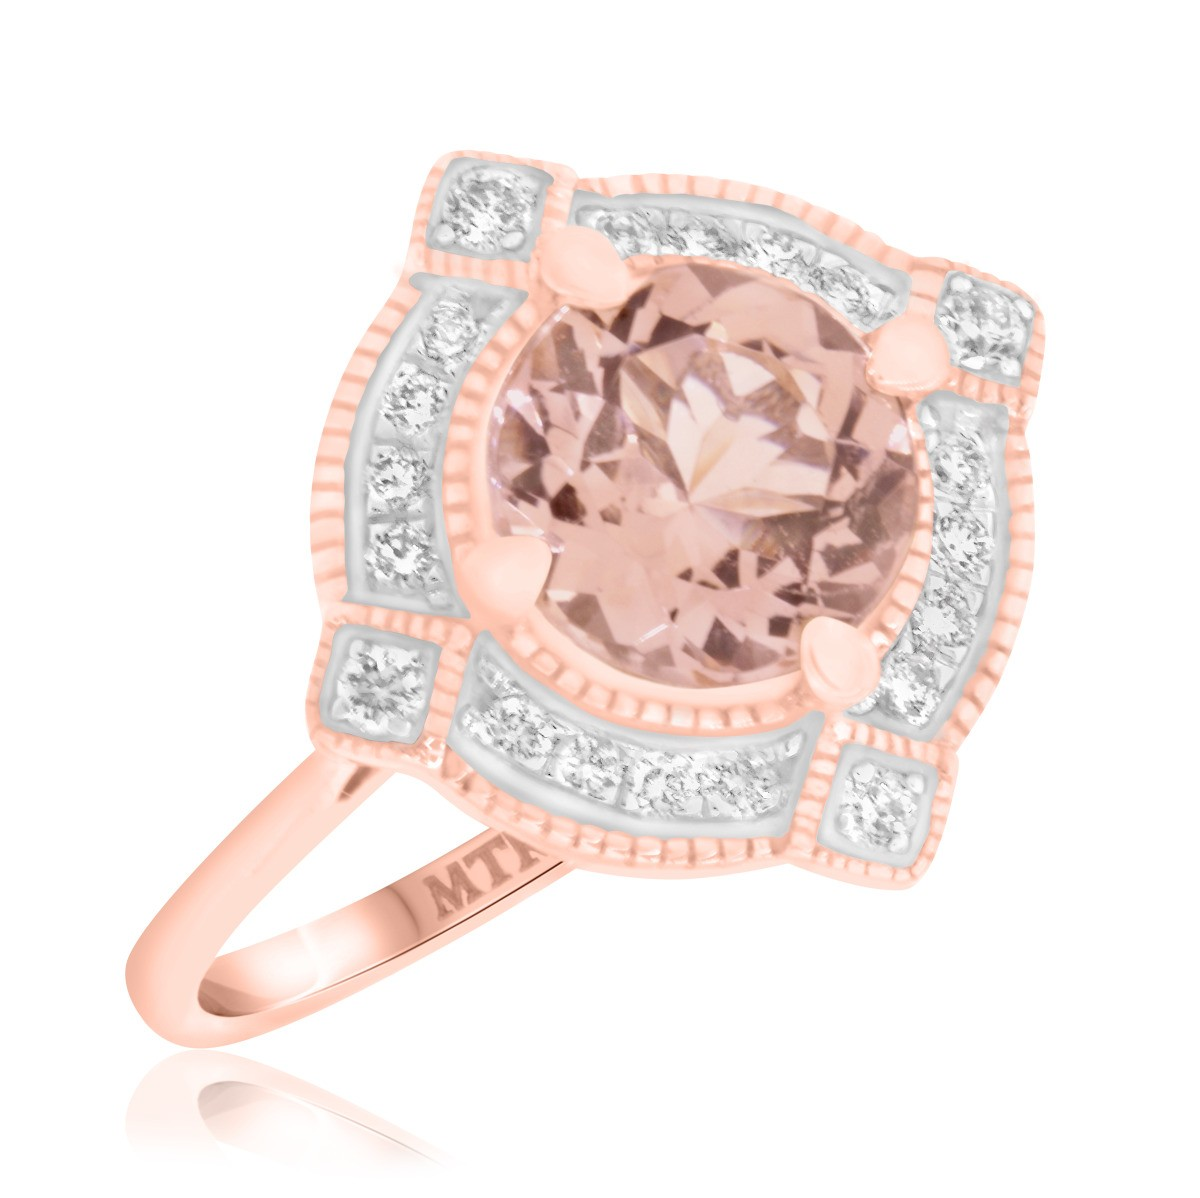 1 3/4 Carat T.W. Morganite and Diamond Engagement Ring 14K Rose Gold